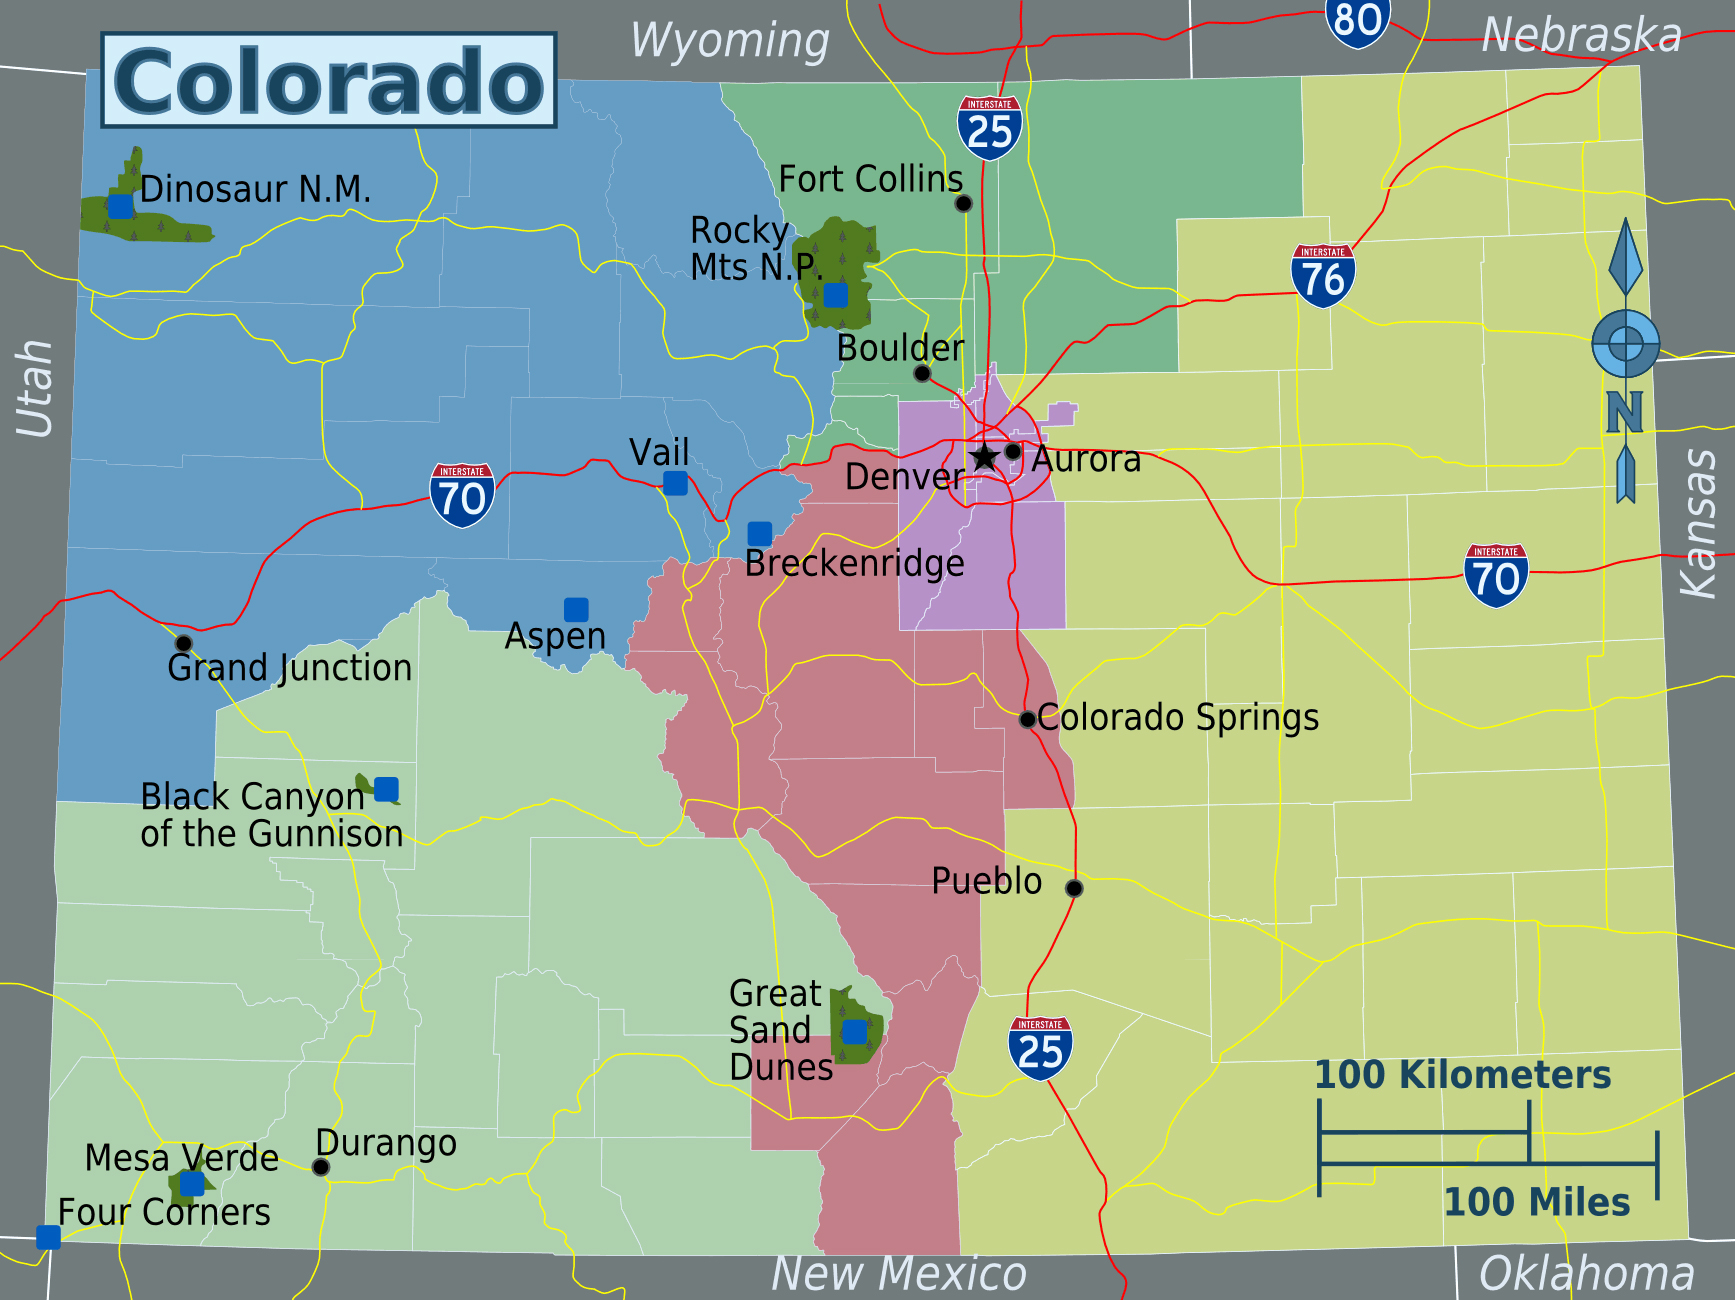 Large Regions Map Of Colorado State Colorado State USA Maps - Map of colorado usa